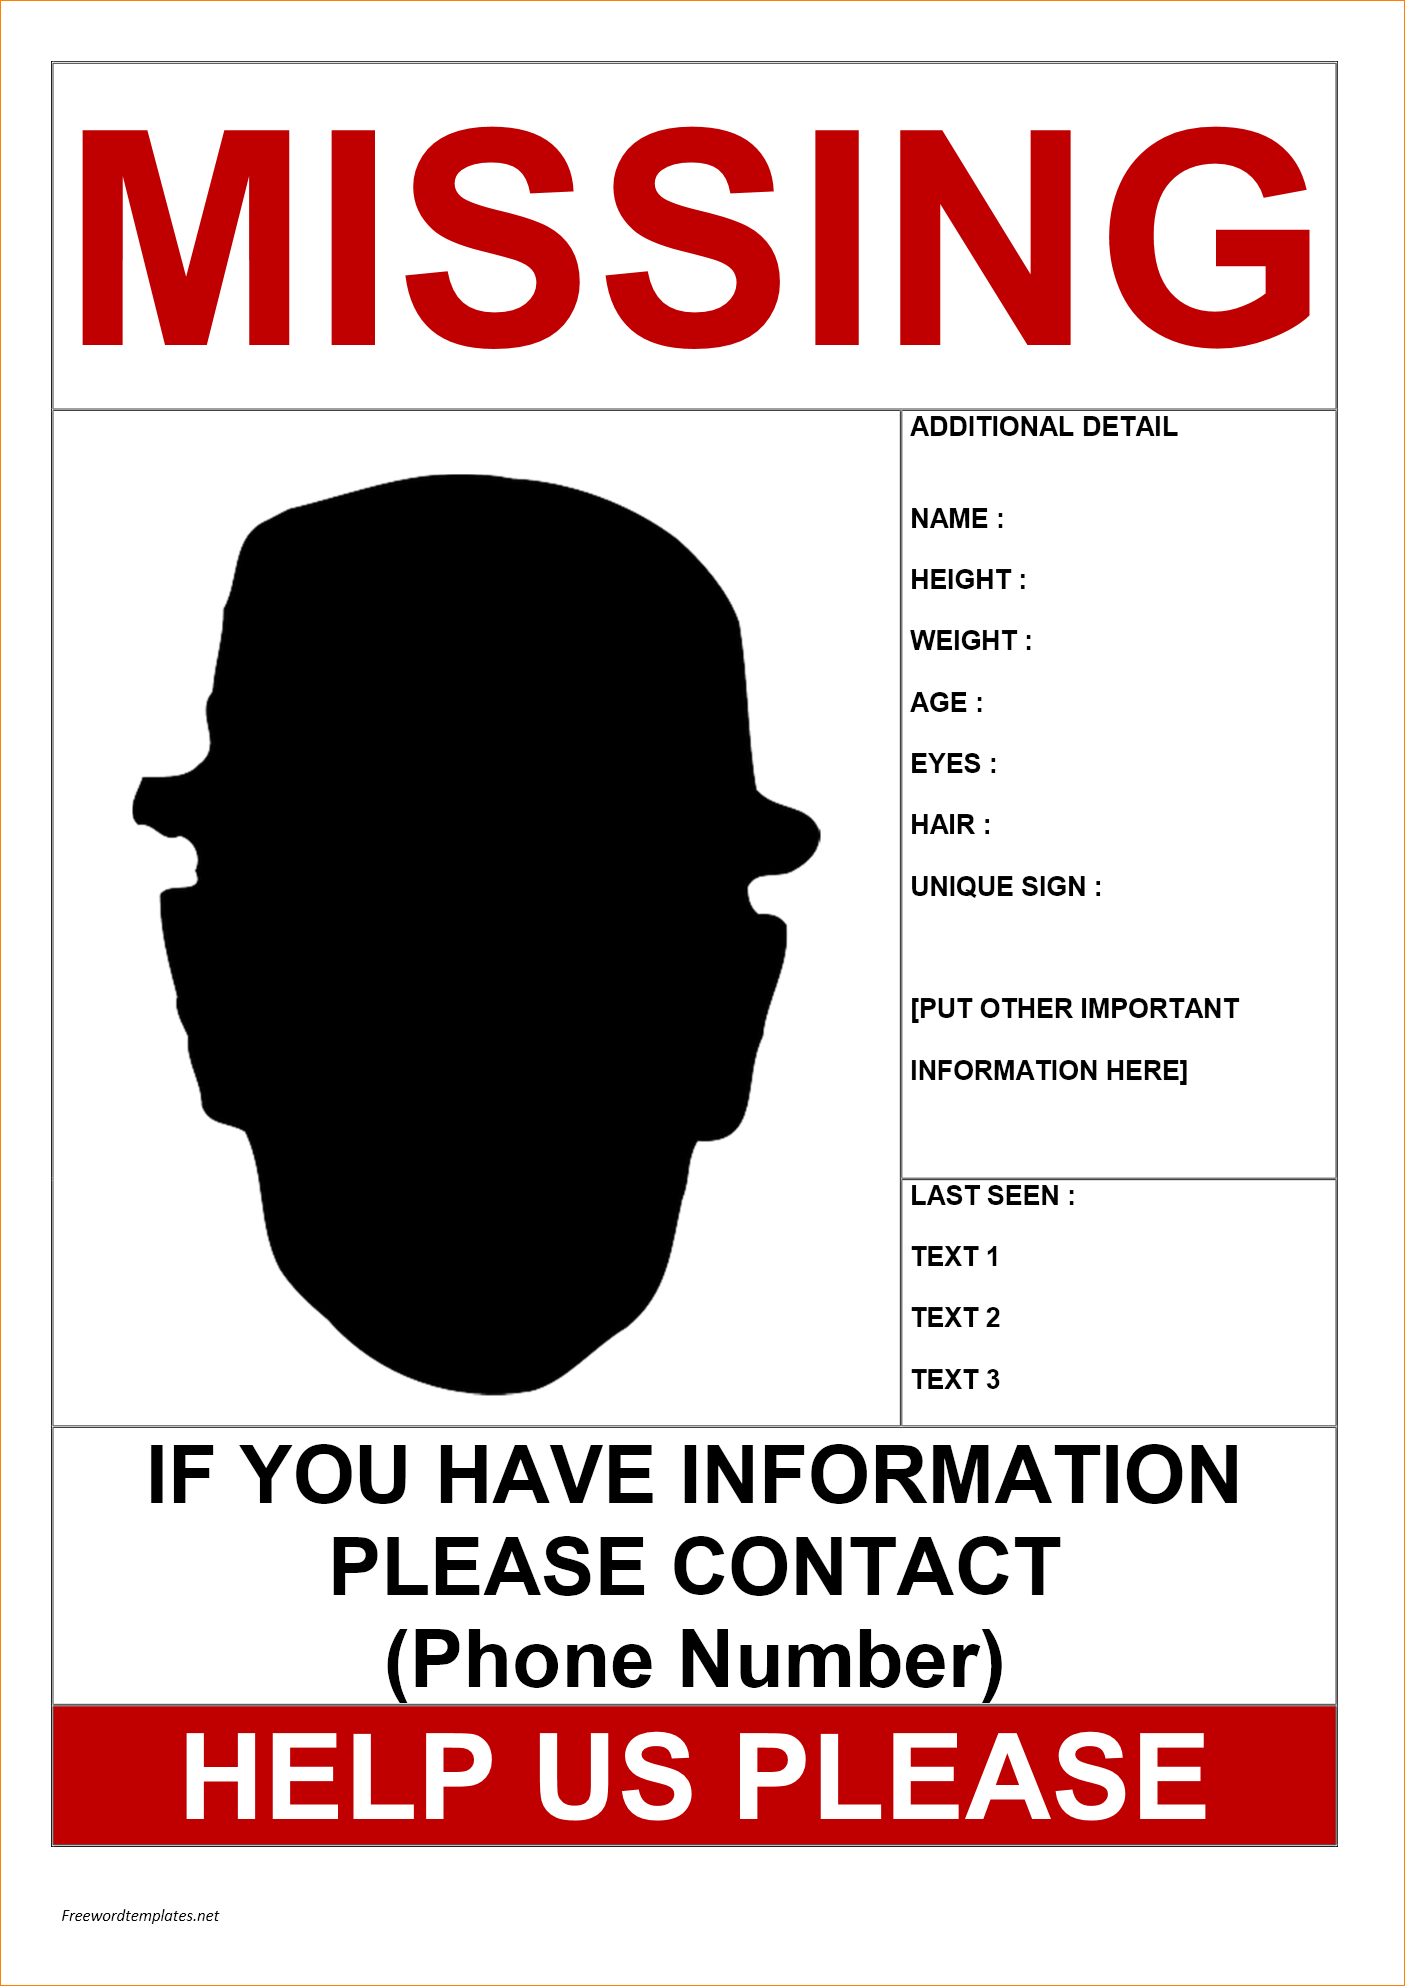 11 Missing Person Poster Templates